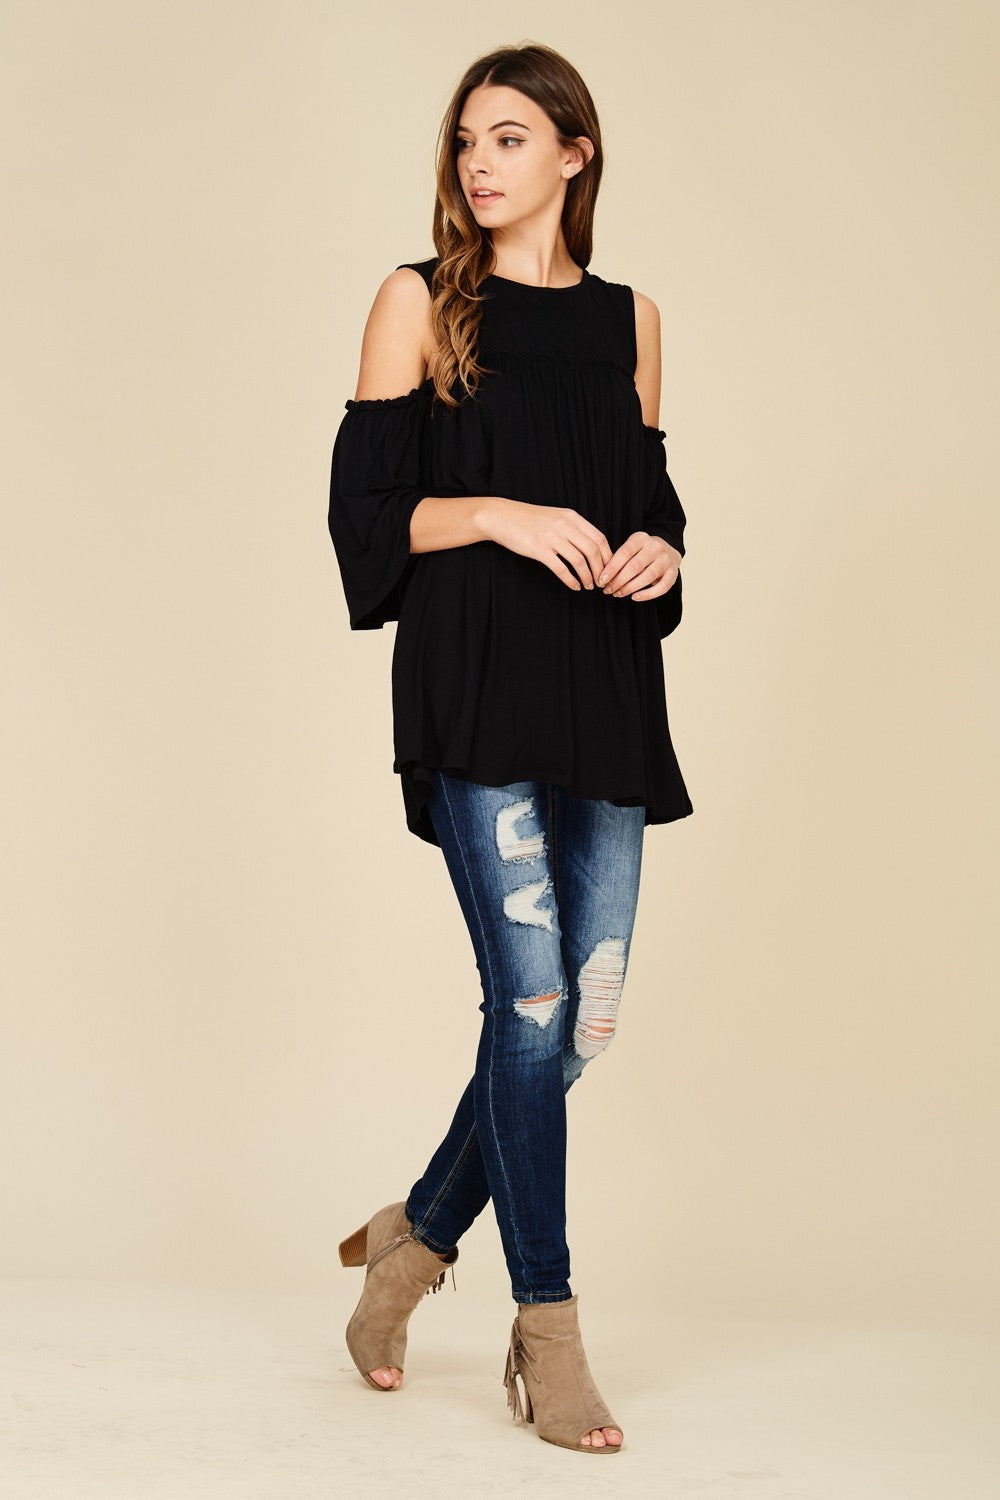 Full view black cold shoulder knit tunic top with three quarter bell sleeves